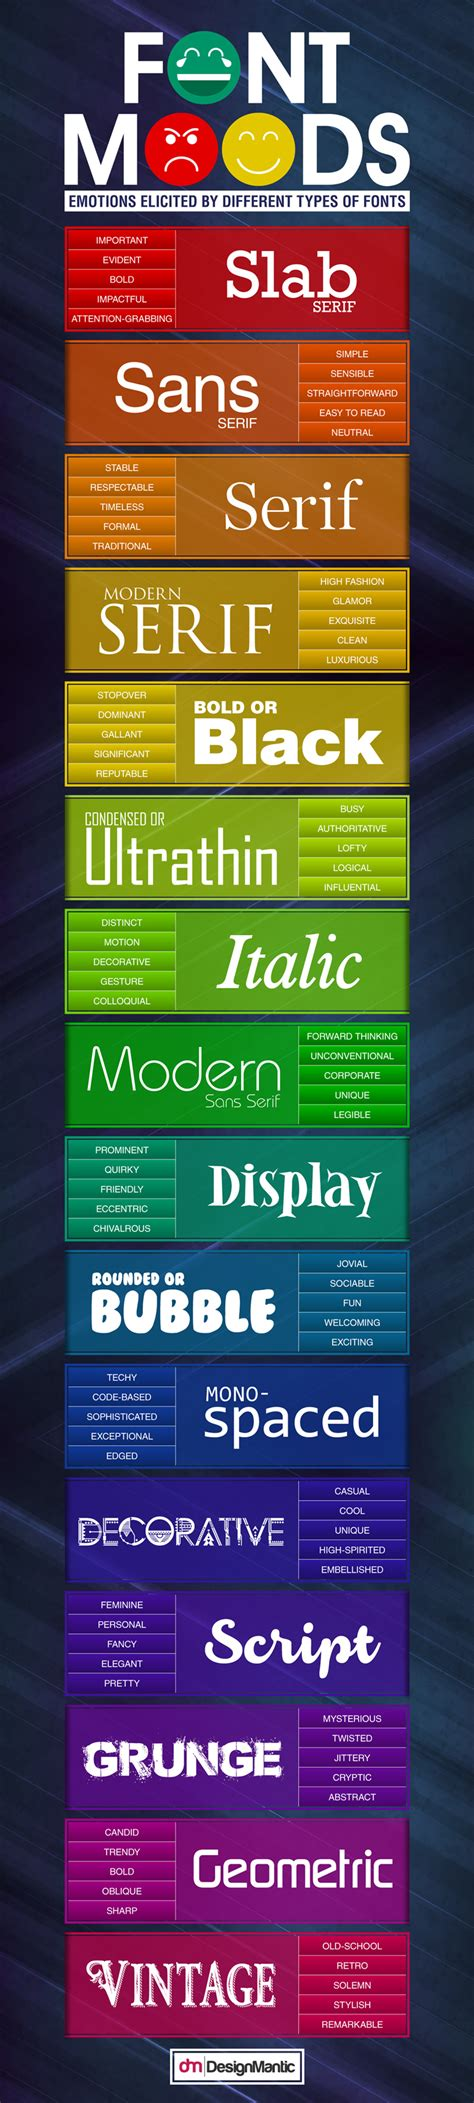 typography emotions what different types of fonts and how to use them